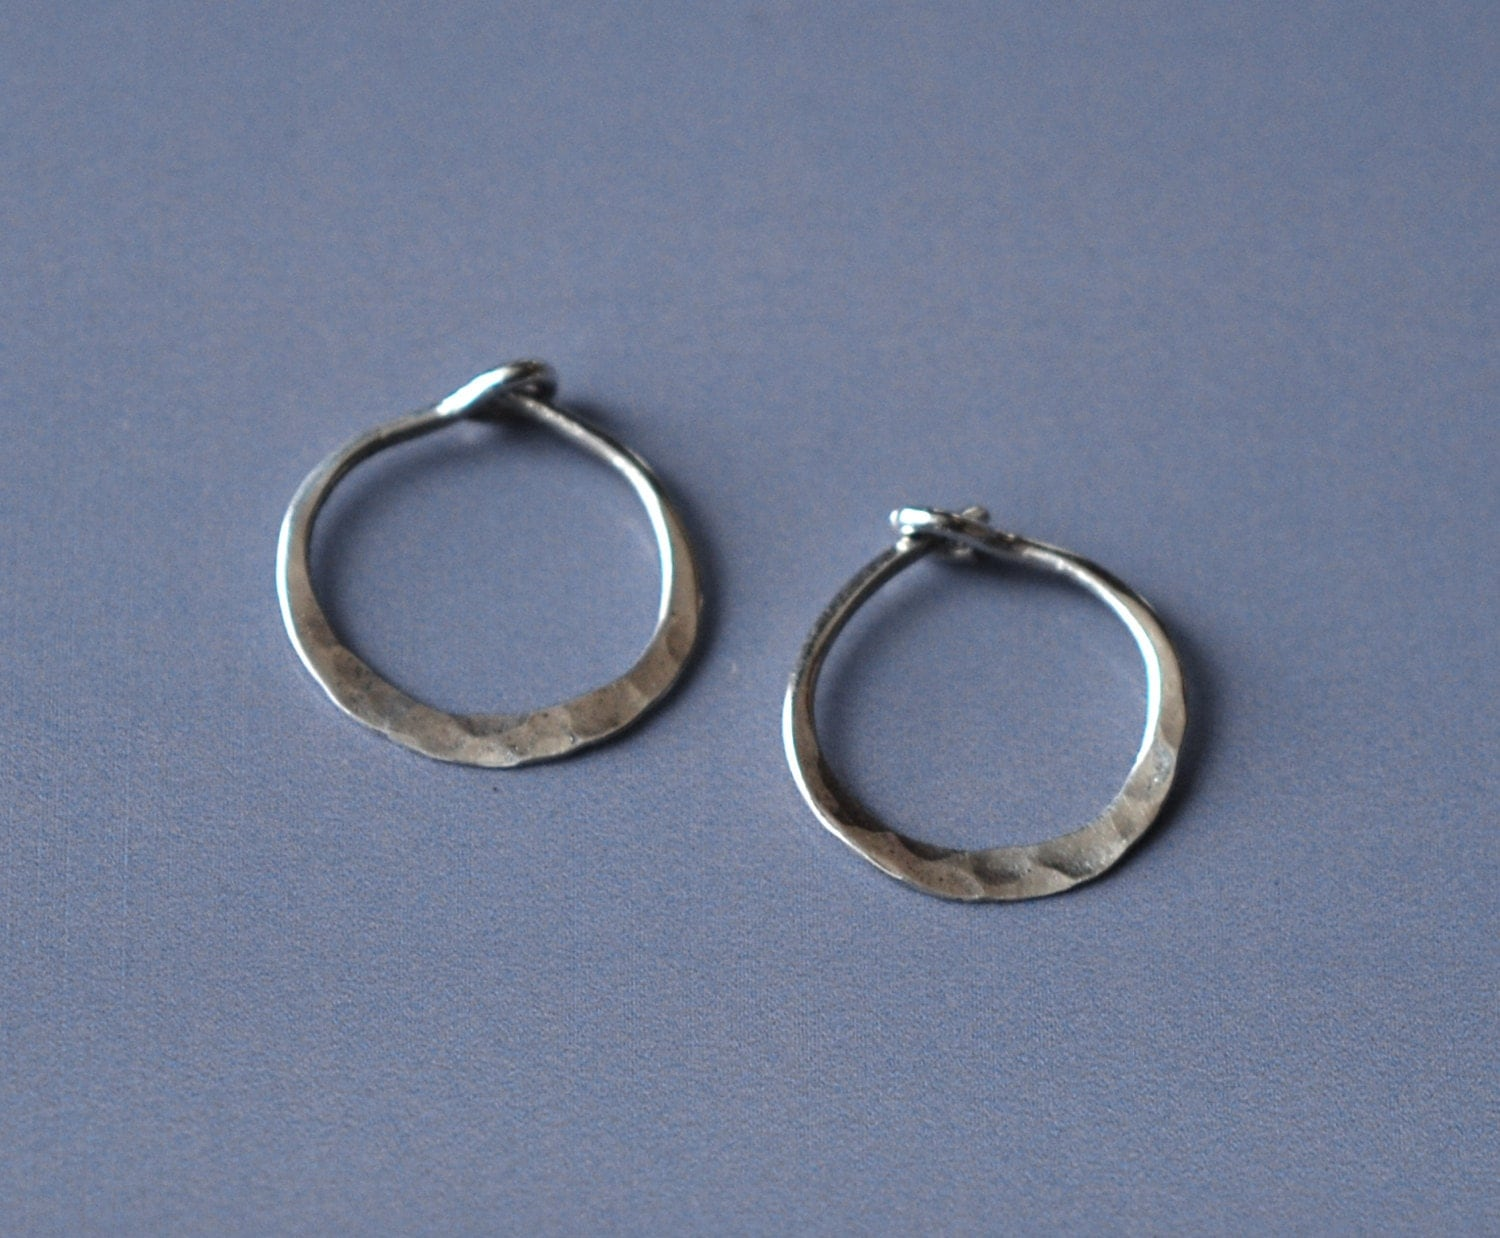 16 hoop earrings small silver hoops 5 8 inch sterling silver hoop earrings 16 6608